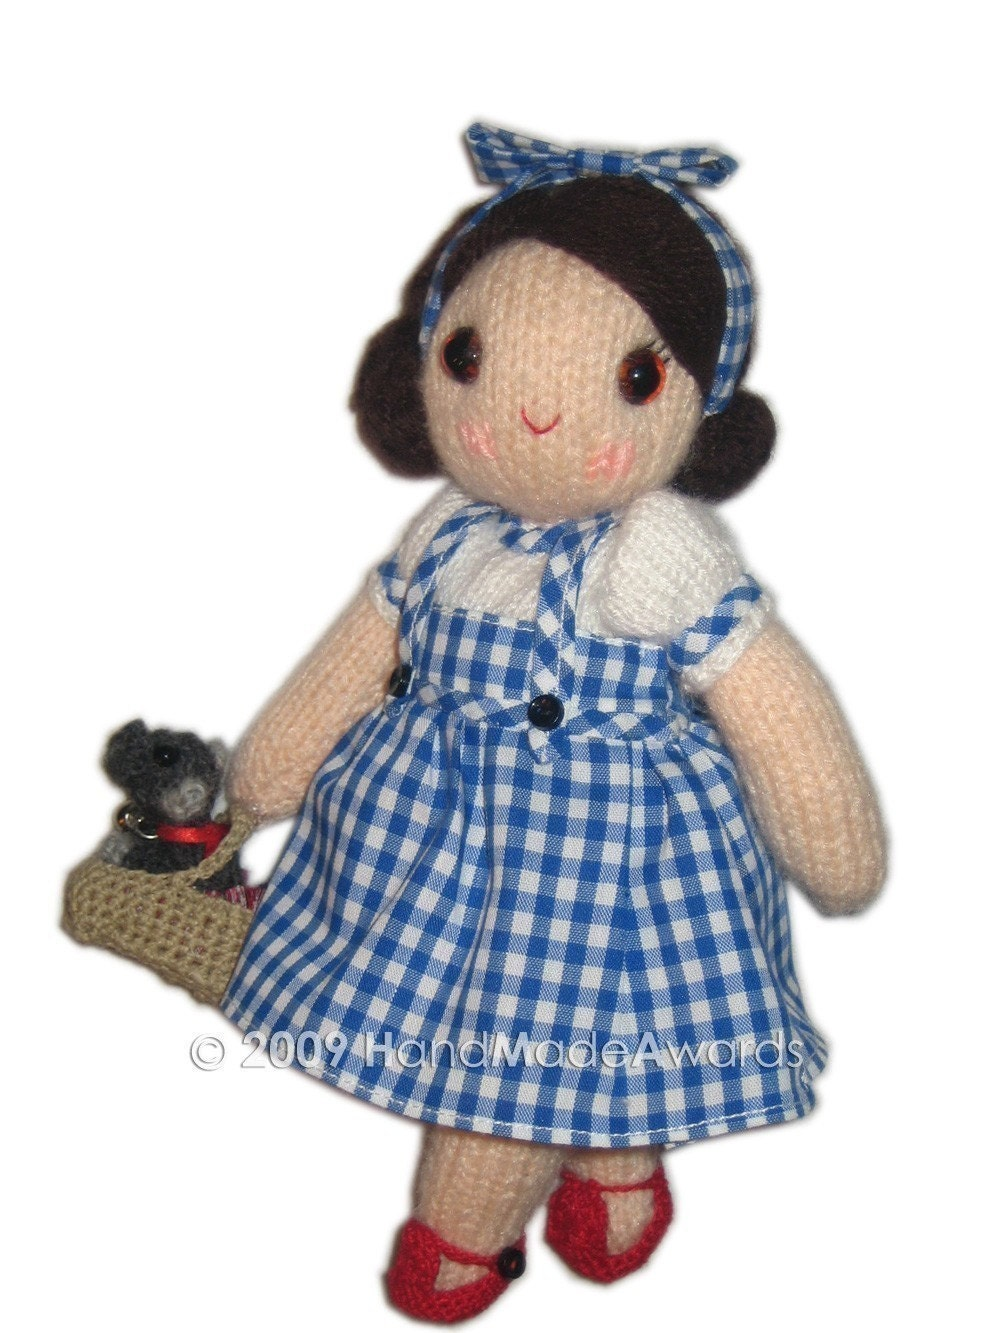 Dorothy Girly Doll With Toto Puppy Dog From Wizard Of Oz